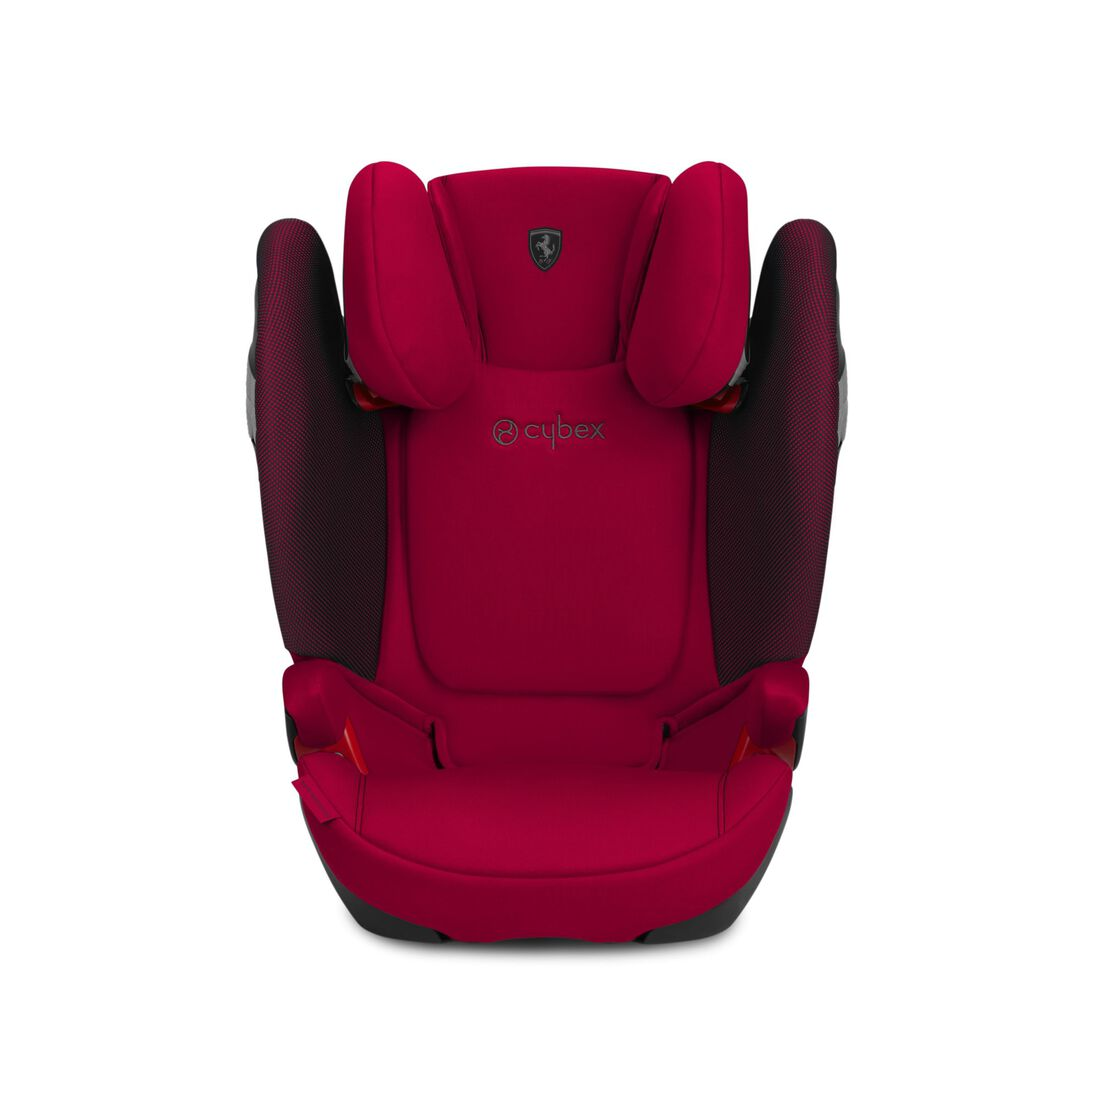 CYBEX Solution S-fix - Ferrari Racing Red in Ferrari Racing Red large Bild 2